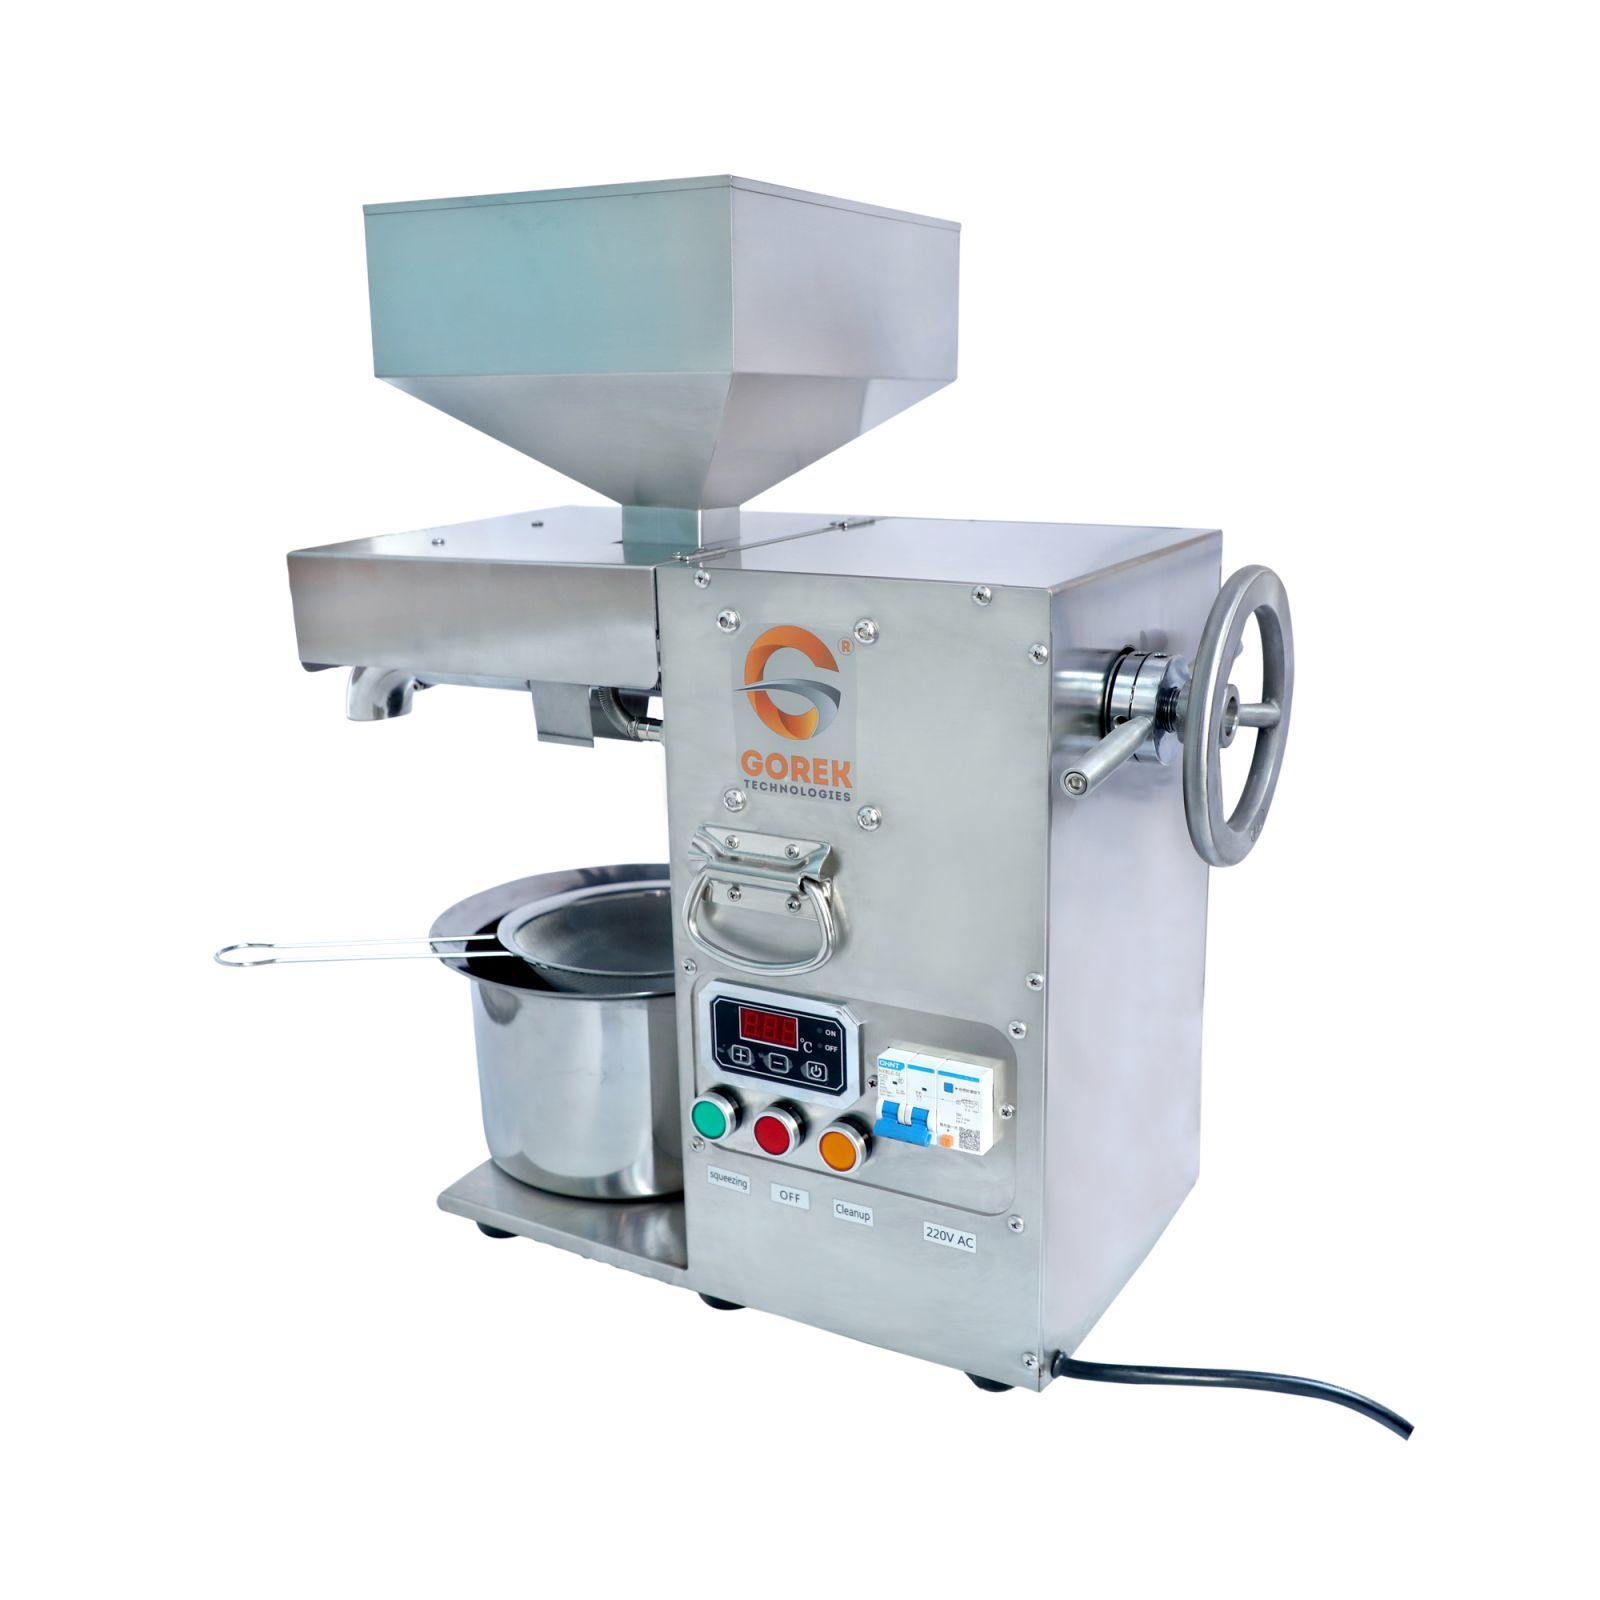 Gorek Oil Making Machine